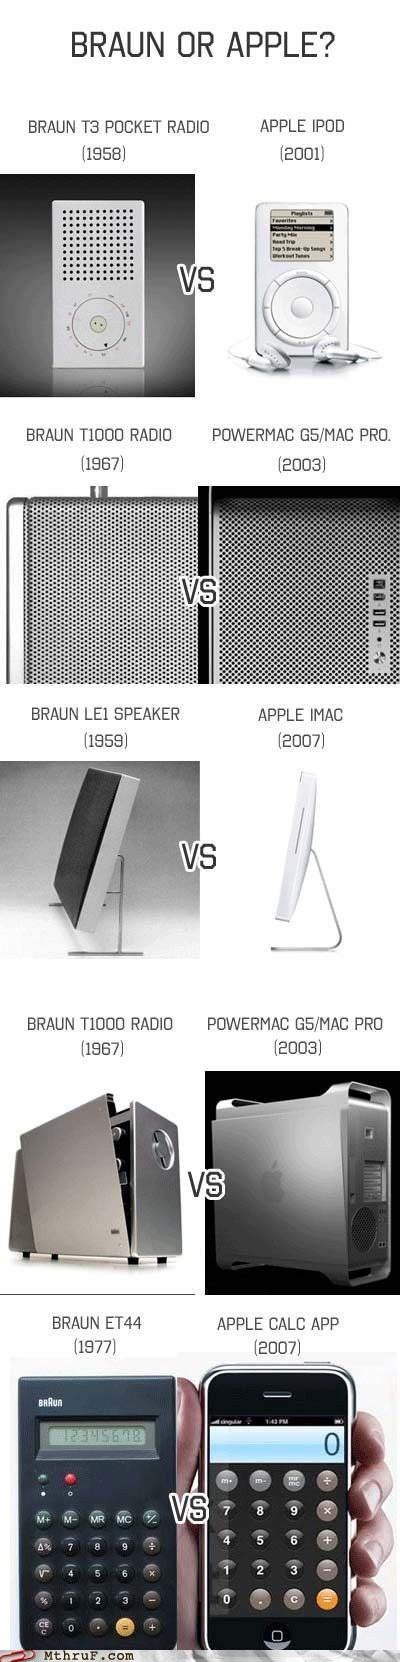 apple,apple vs braun,braun,braun vs apple,calculator,iphone,ipod,le1,mac